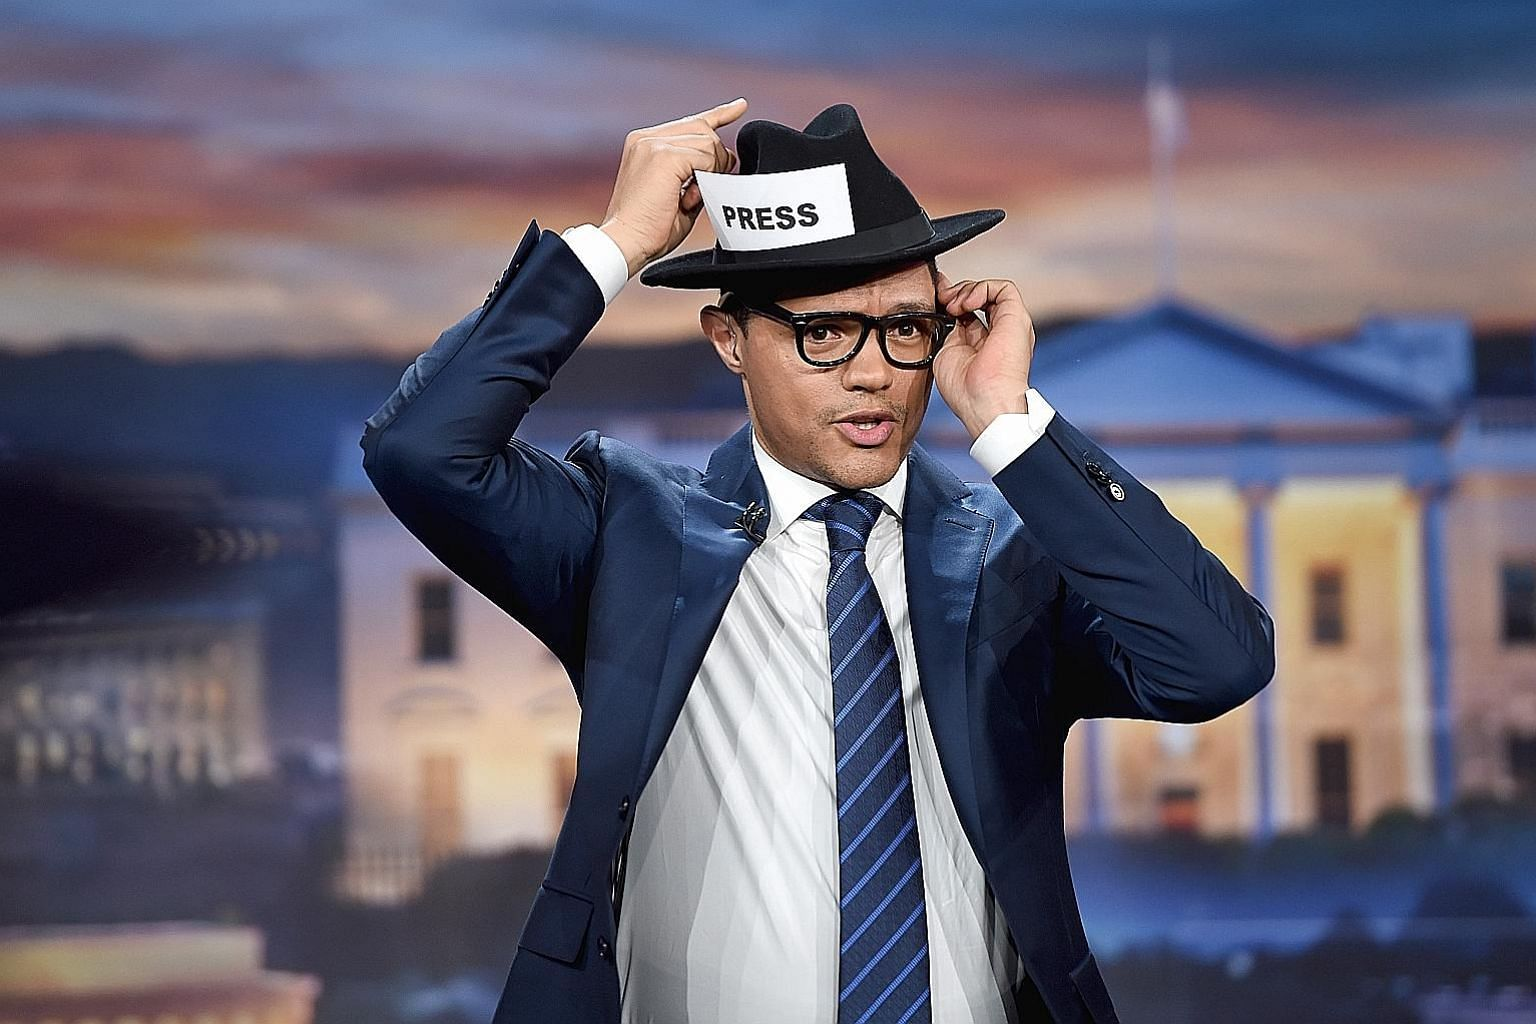 The Daily Show host Trevor Noah's funny and incisive takes on United States President Donald Trump have given the satirical newscast new cultural relevance.